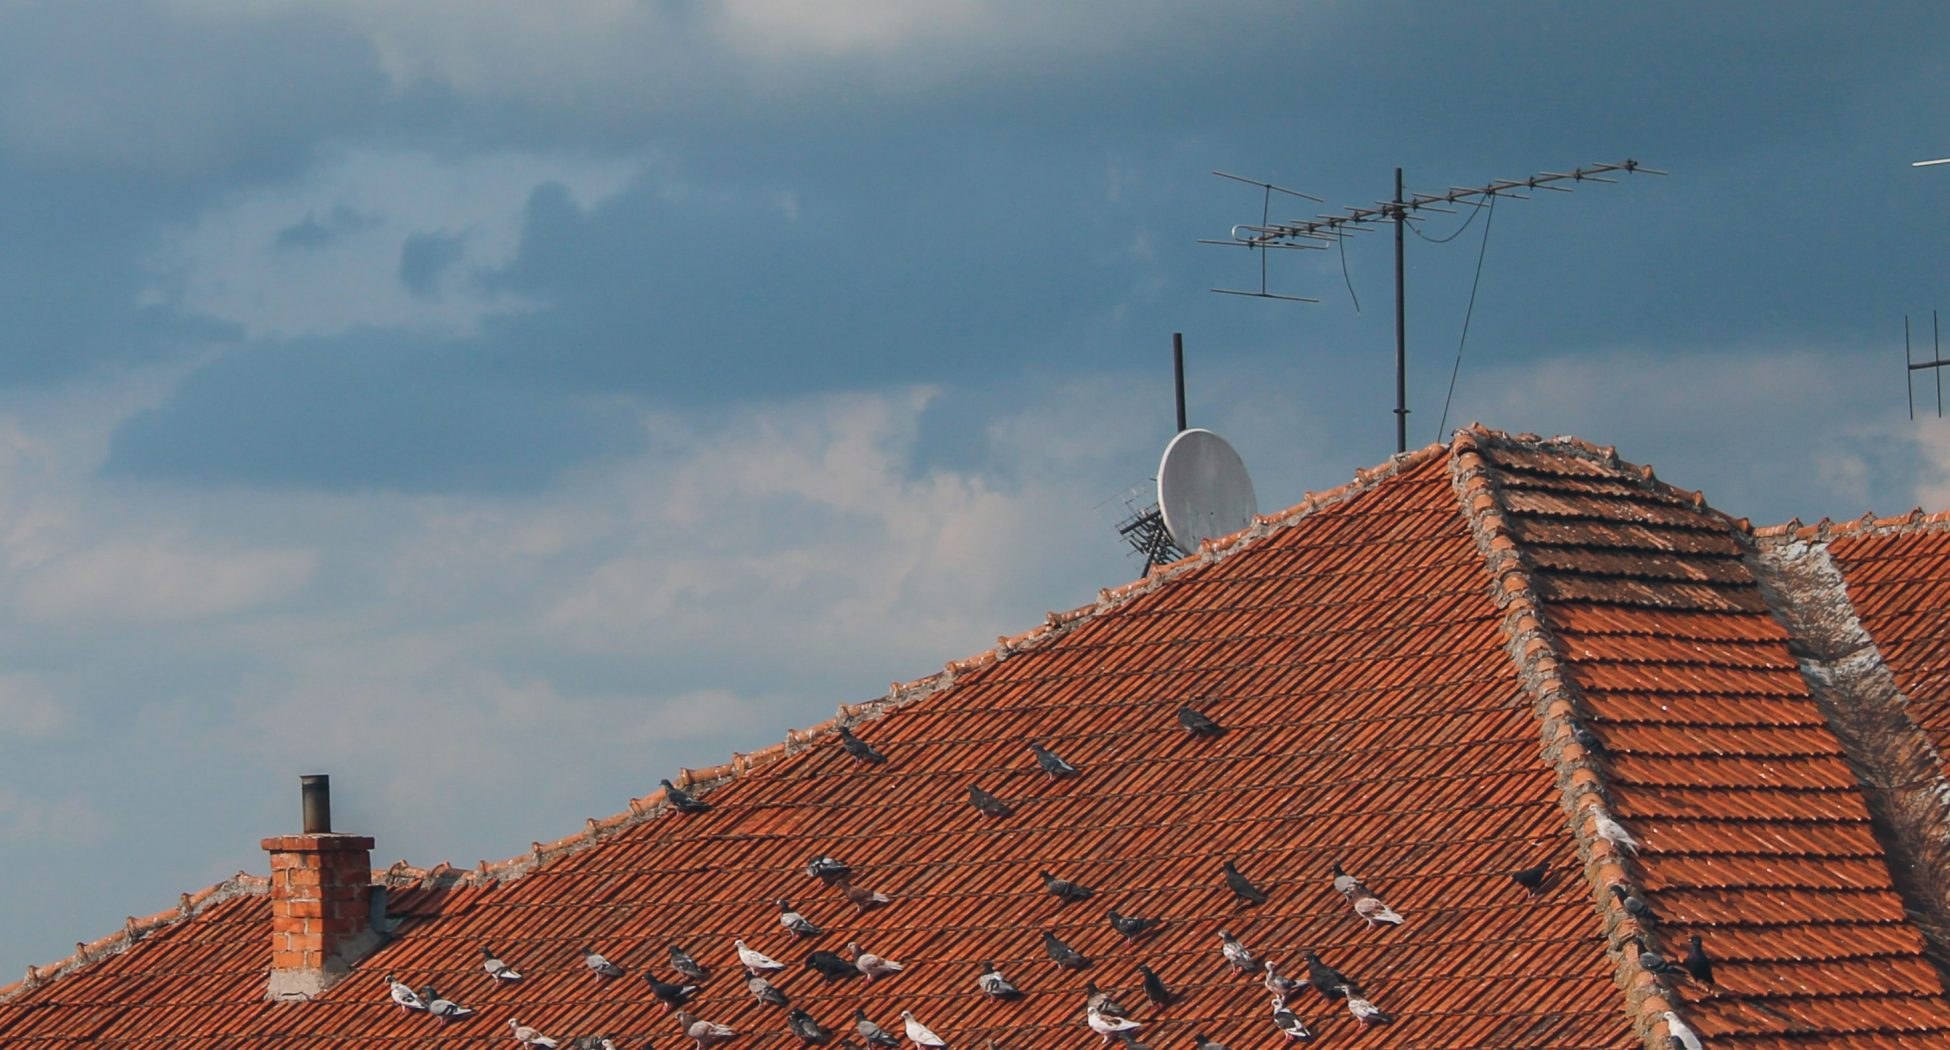 obby rh M2WcoqJgkPg unsplash 1950x1050 - How To Find The Best Professional For Your Roof?